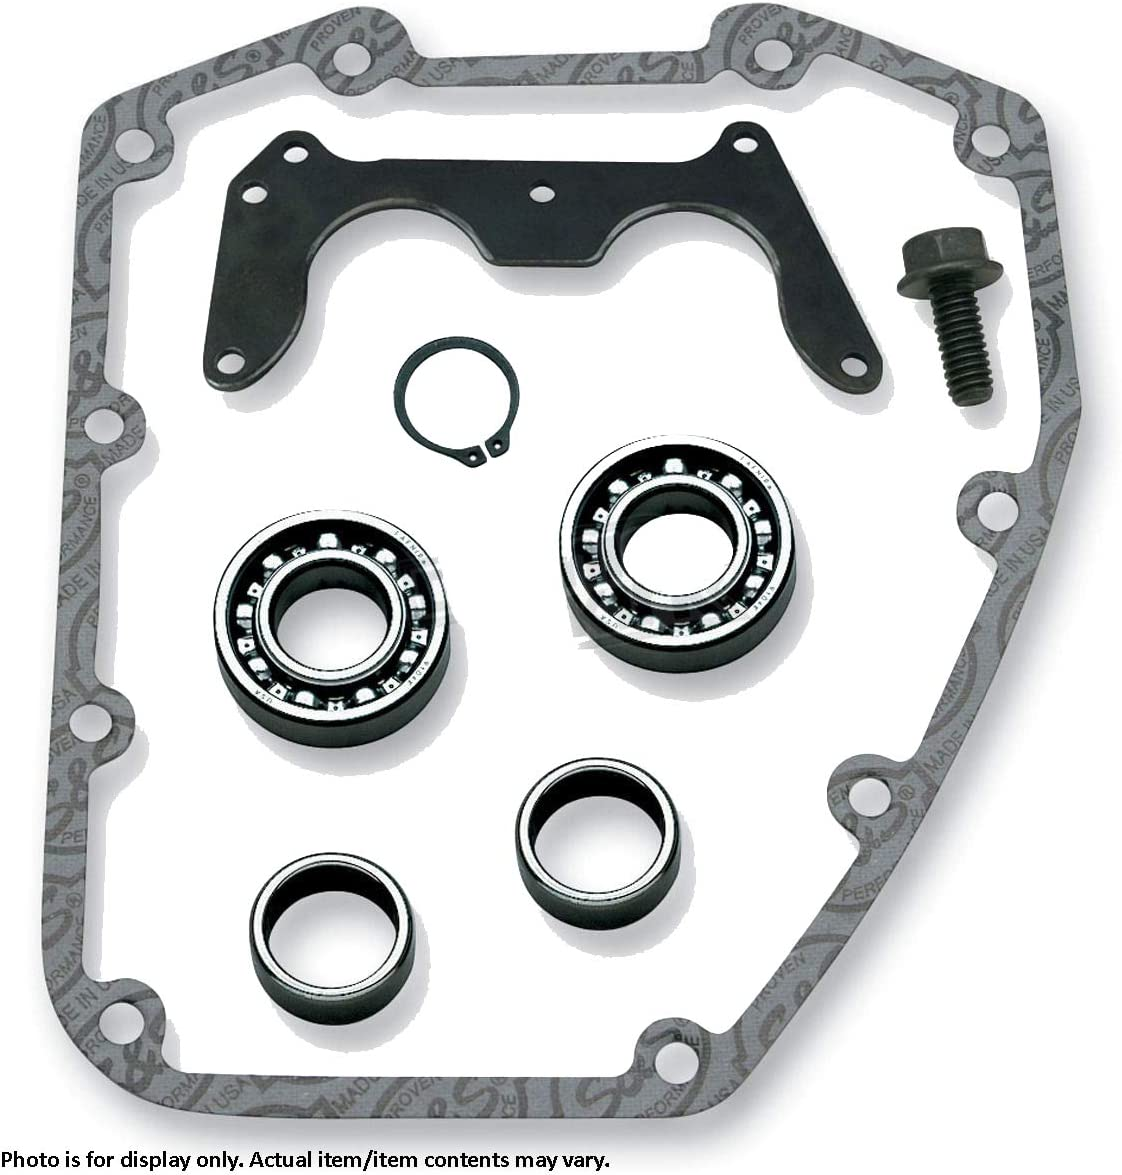 Inexpensive Samp S cheap Cycle Camshaft 106-5896 Installation Kit